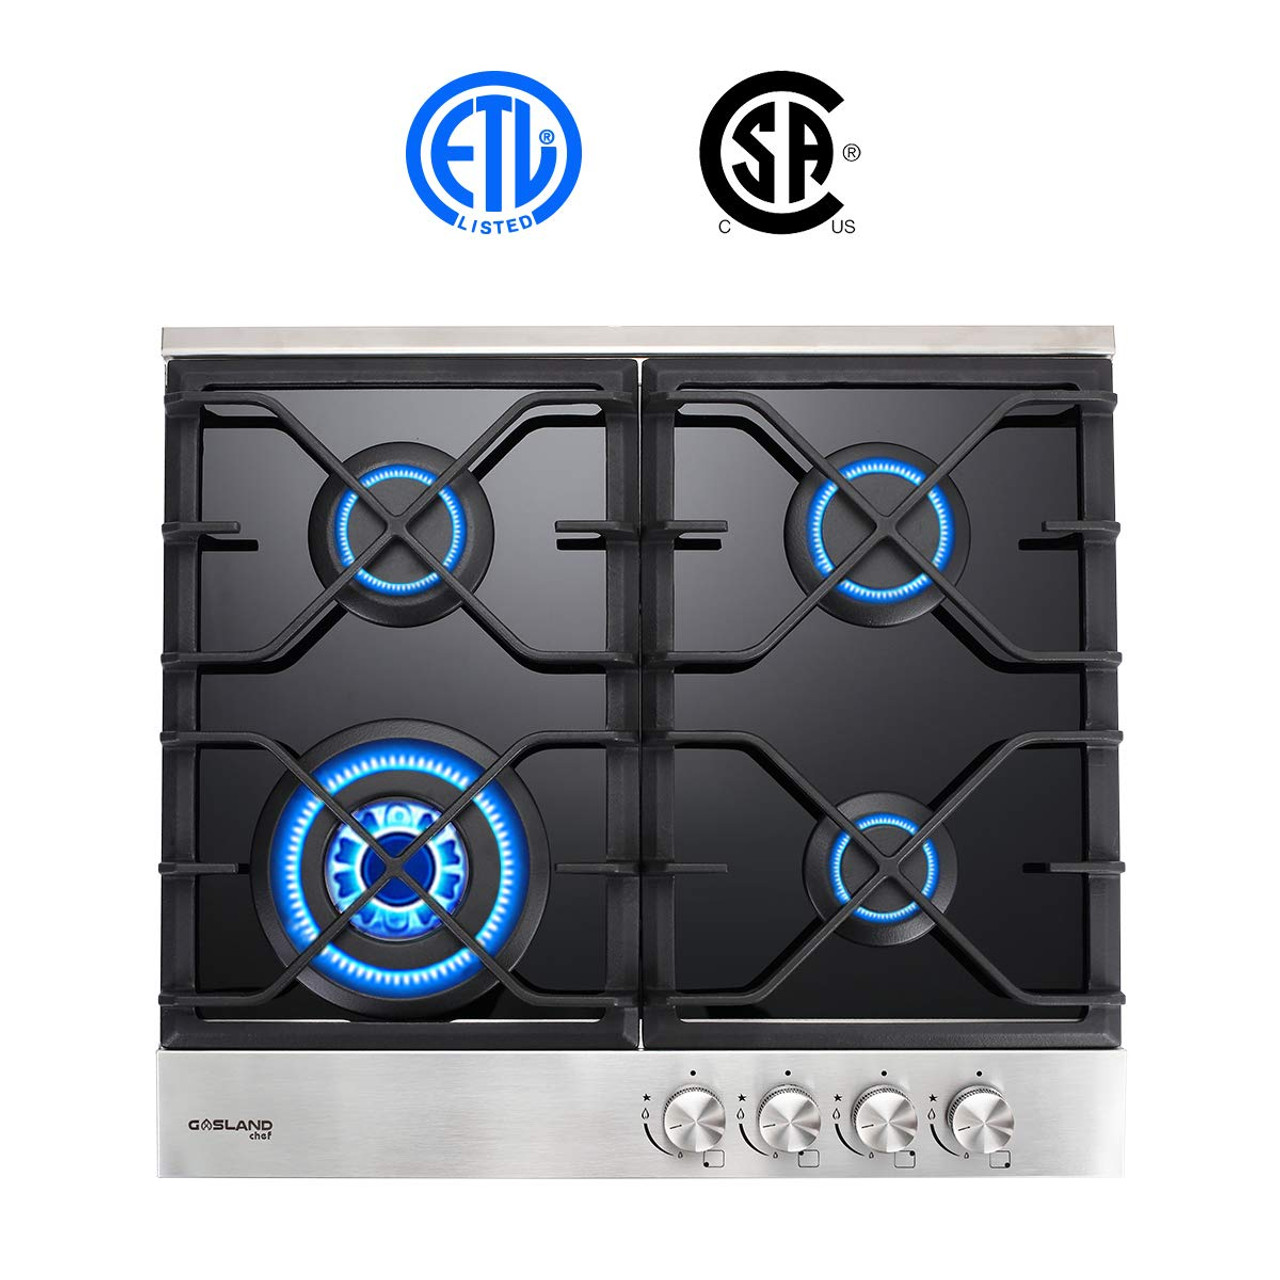 Gas Cooktop Gasland Chef Gh60bf 24 Built In Gas Stove Top Black Tempered Glass Lpg Natural Gas Cooktop Gas Stove Top With 4 Sealed Burners Etl Safety Certified Thermocouple Protection Easy To